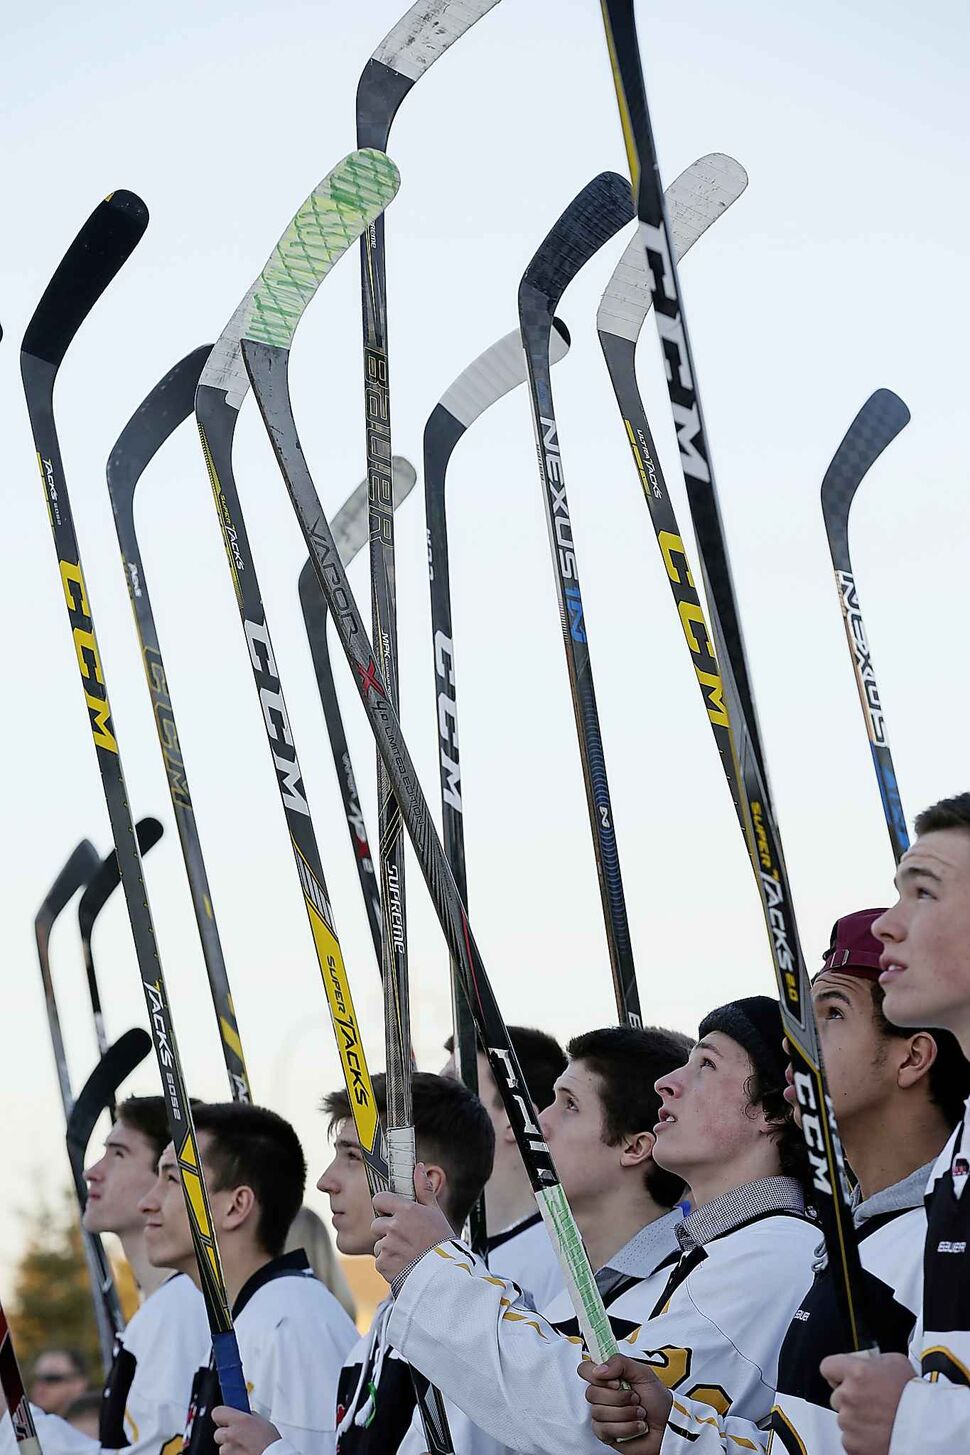 JOHN WOODS / WINNIPEG FREE PRESS</p><p>April 16 — Players raise their sticks at a Manitoba Hockey vigil for the Humboldt Broncos at My Church in Winnipeg.</p>